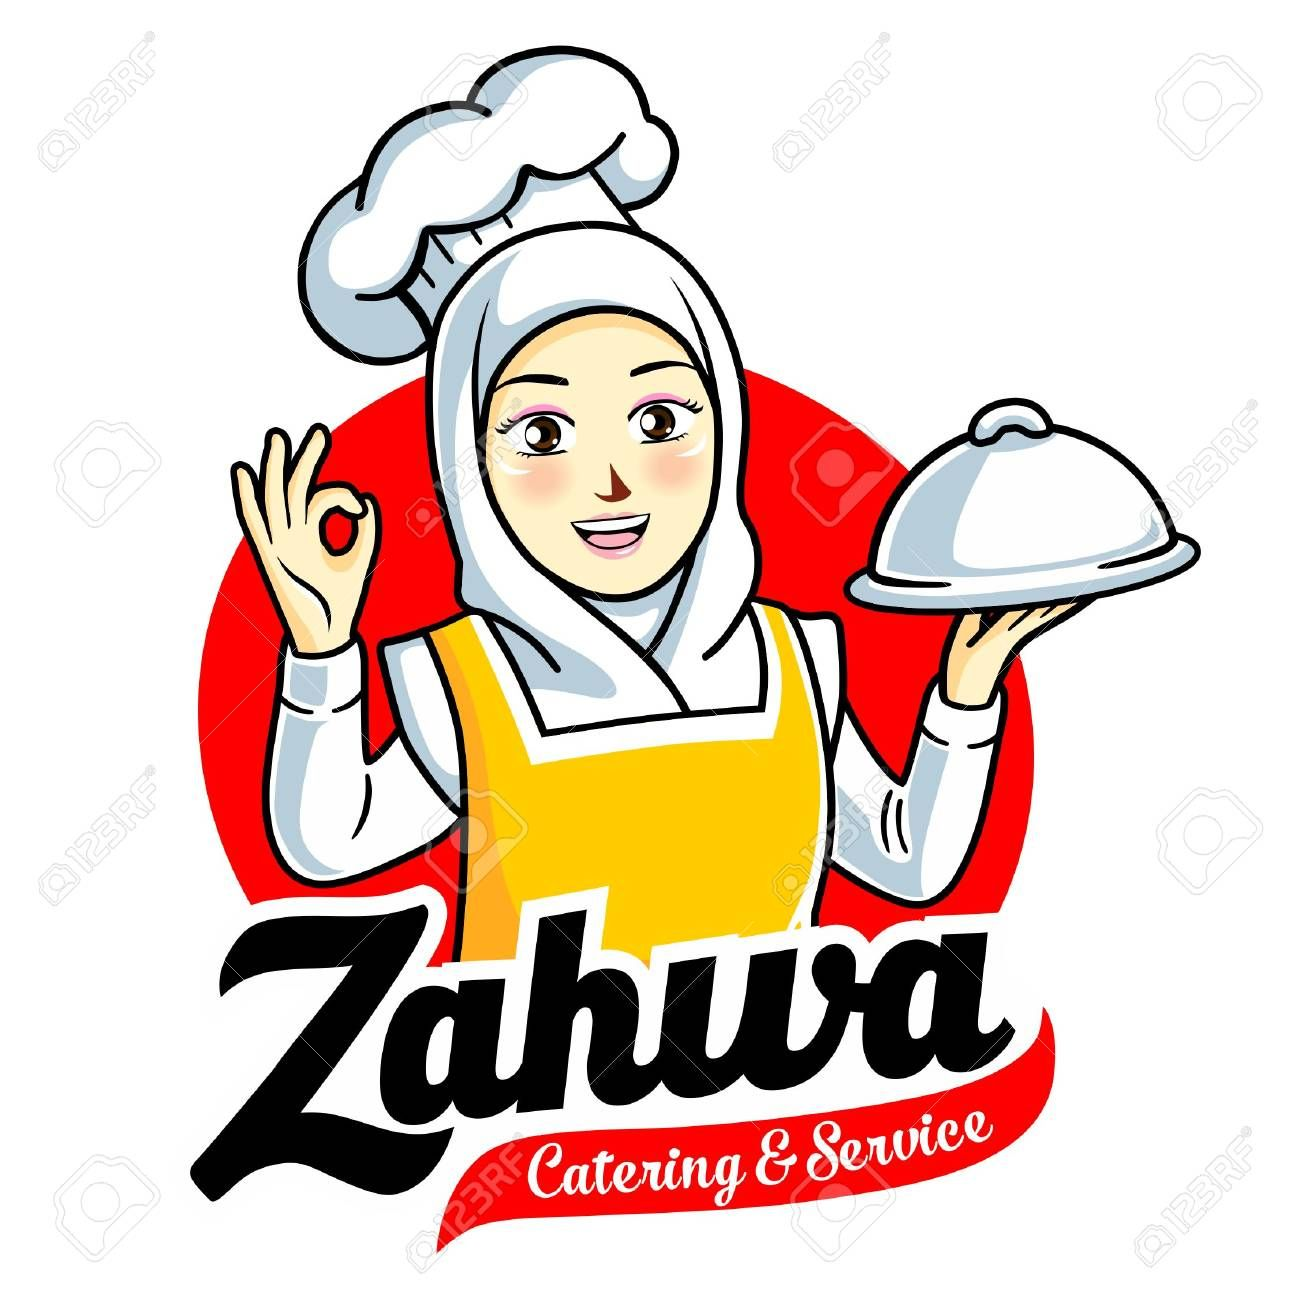 Female Muslim Chef Royalty Free Cliparts, Vectors, And